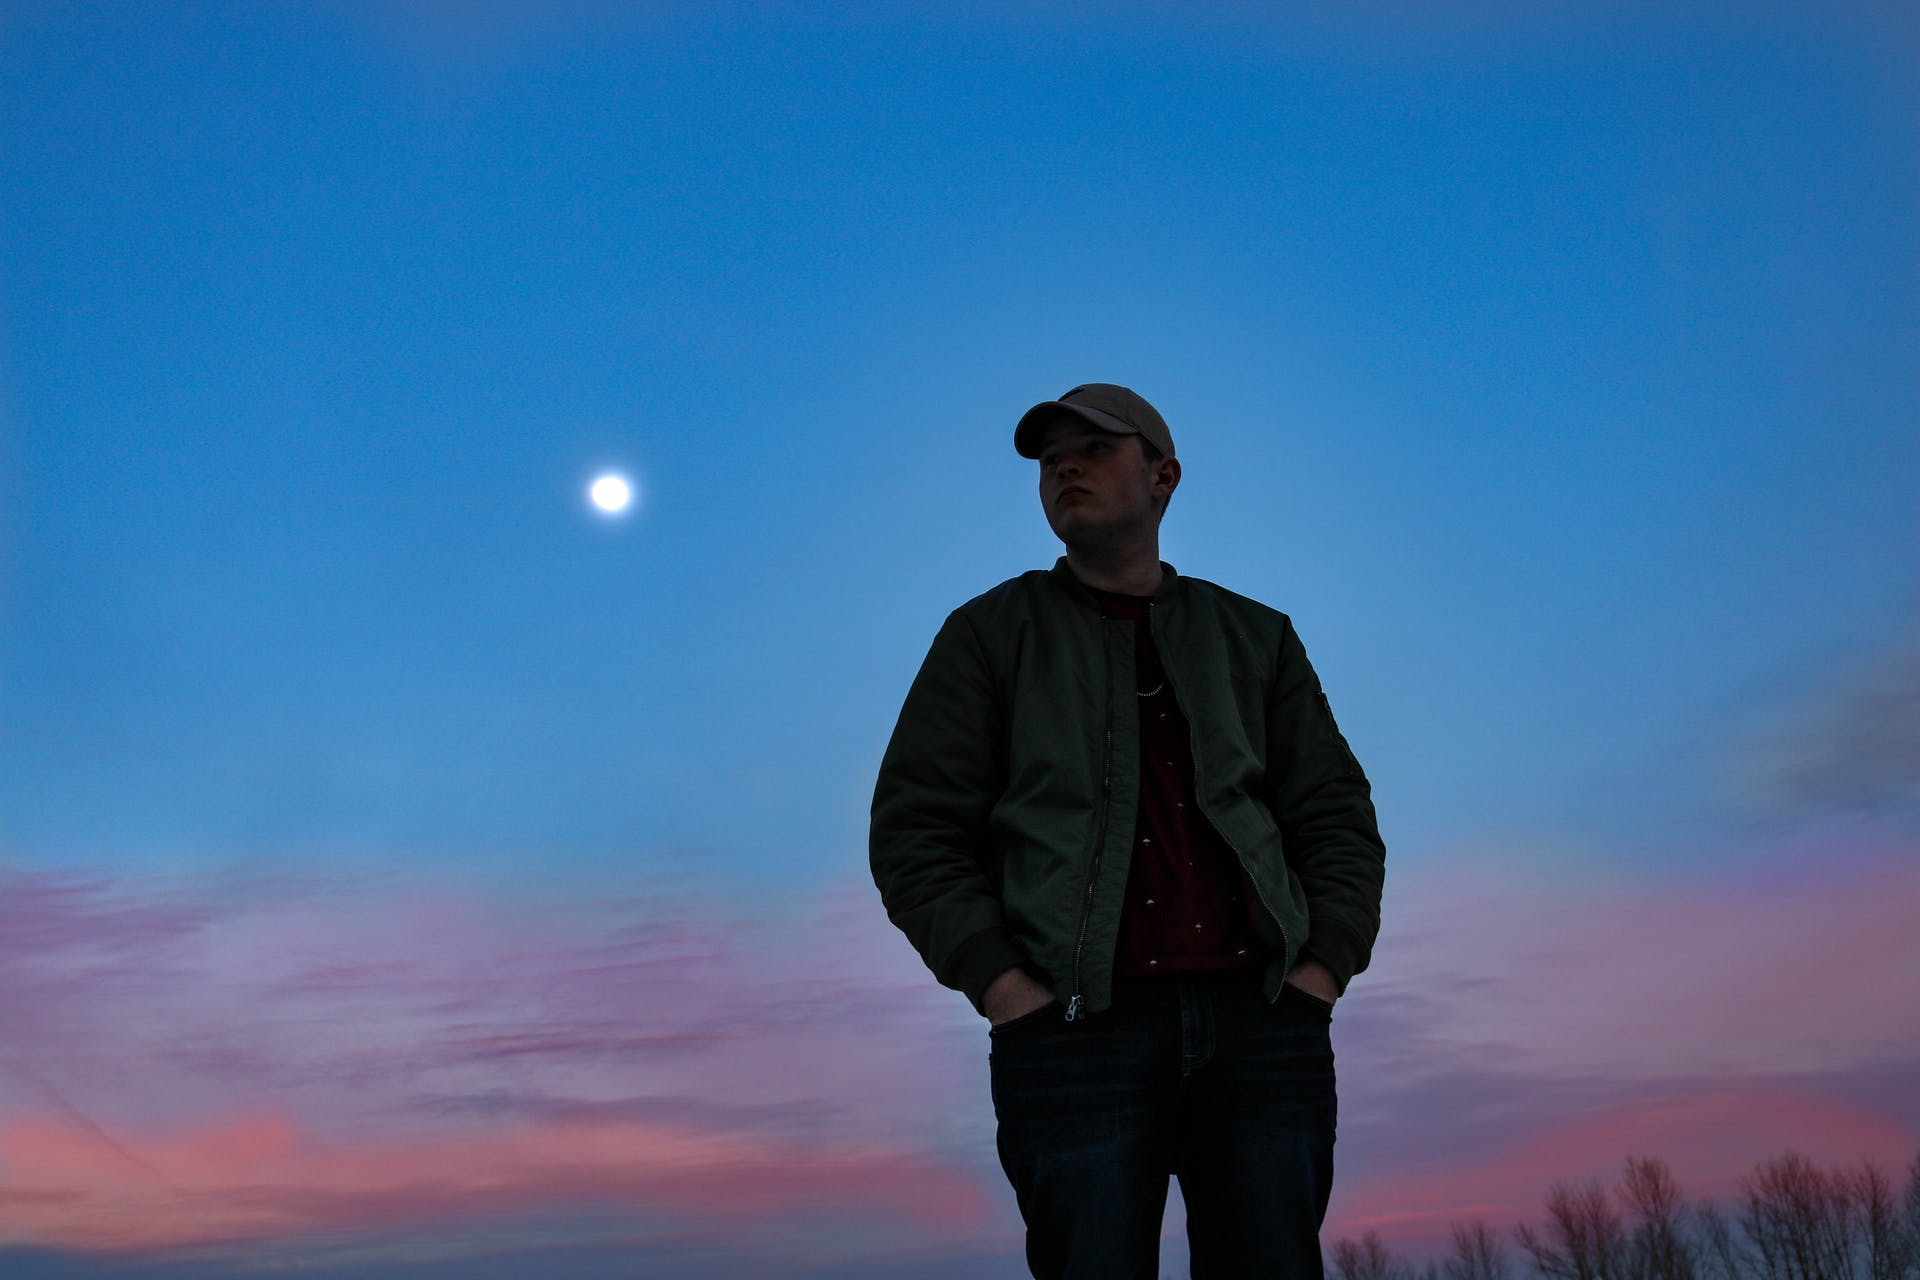 moon scenic evening photoshoot person landscape pose sky clouds man